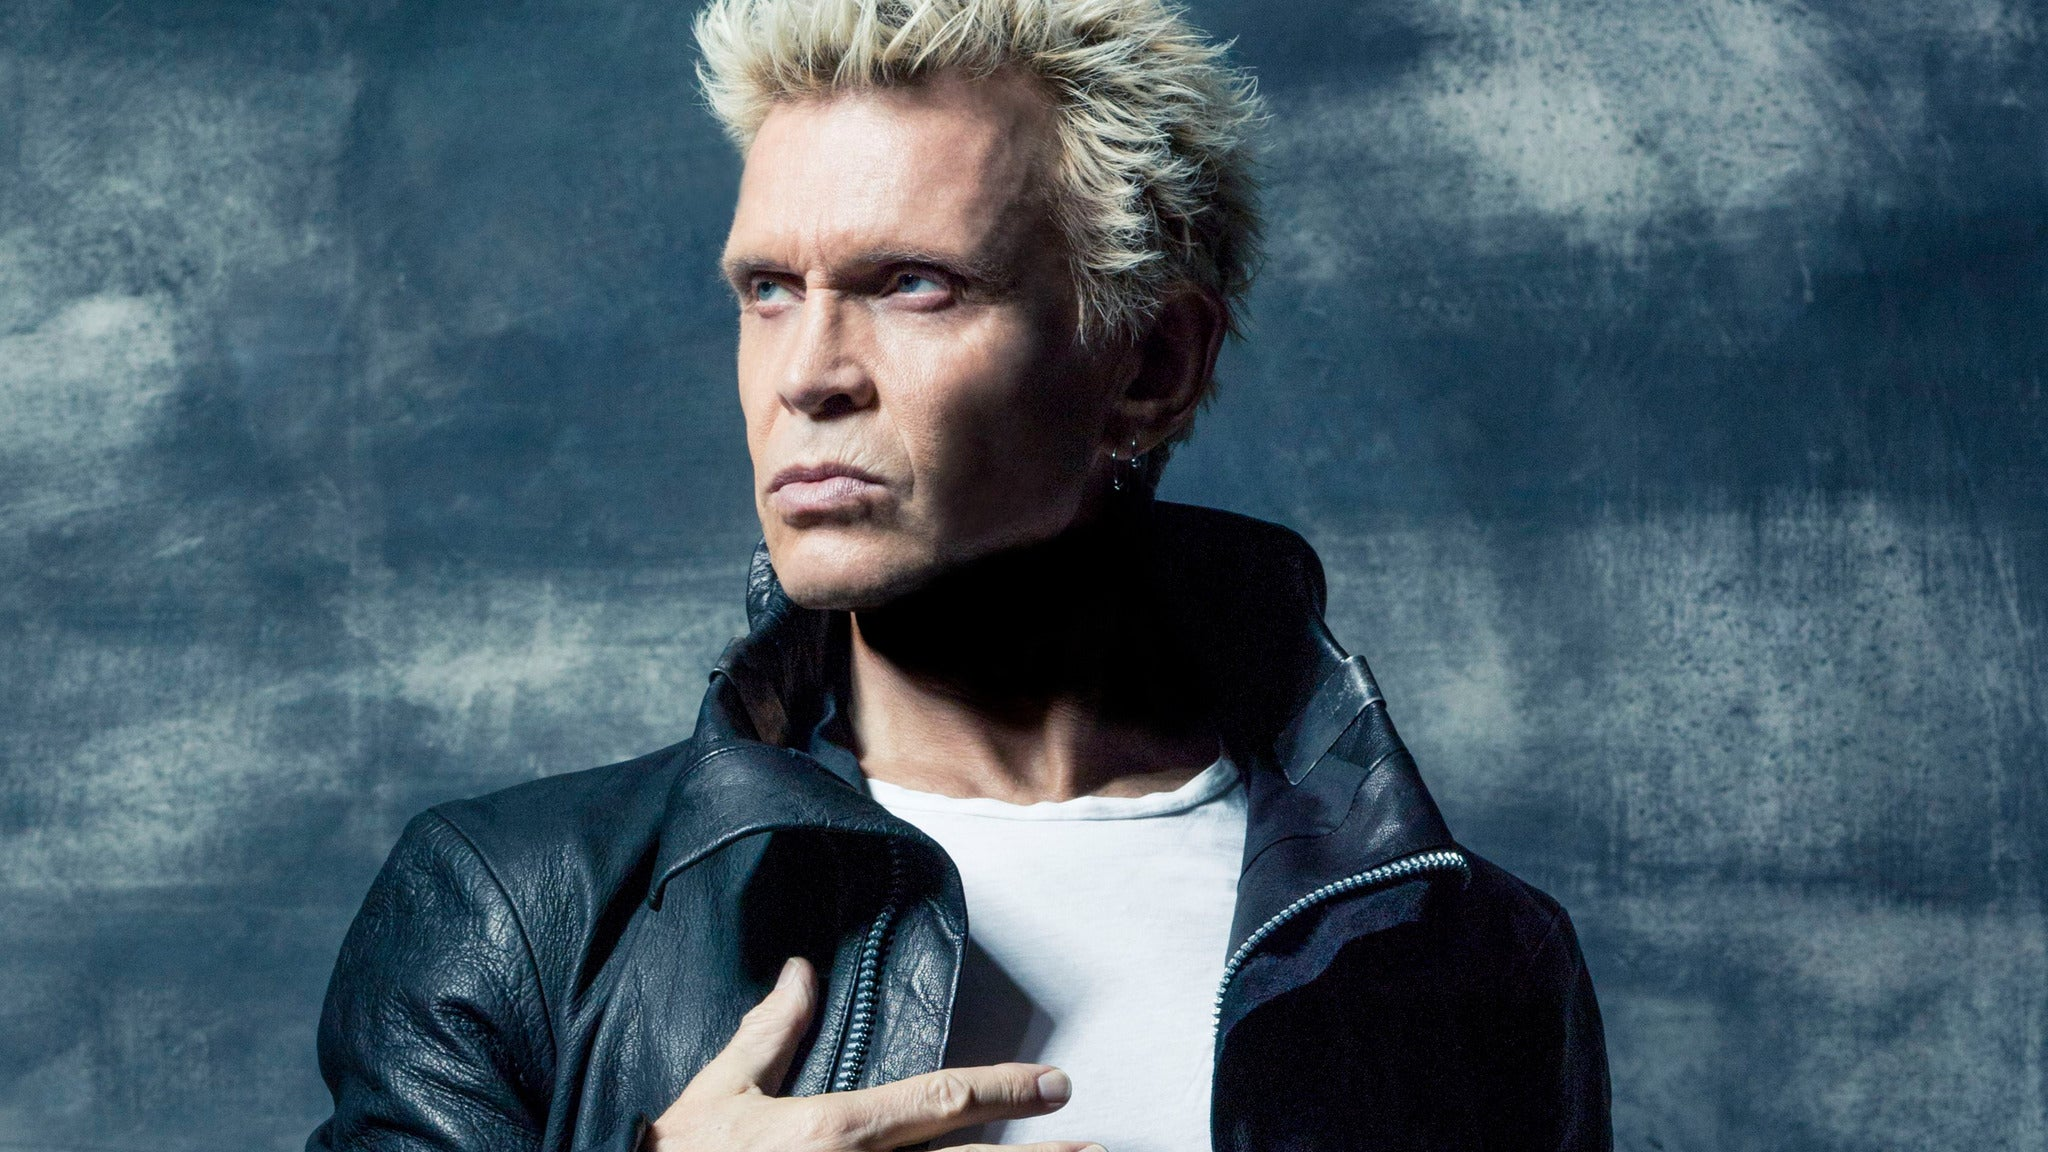 Buffet Meal Offer: Billy Idol